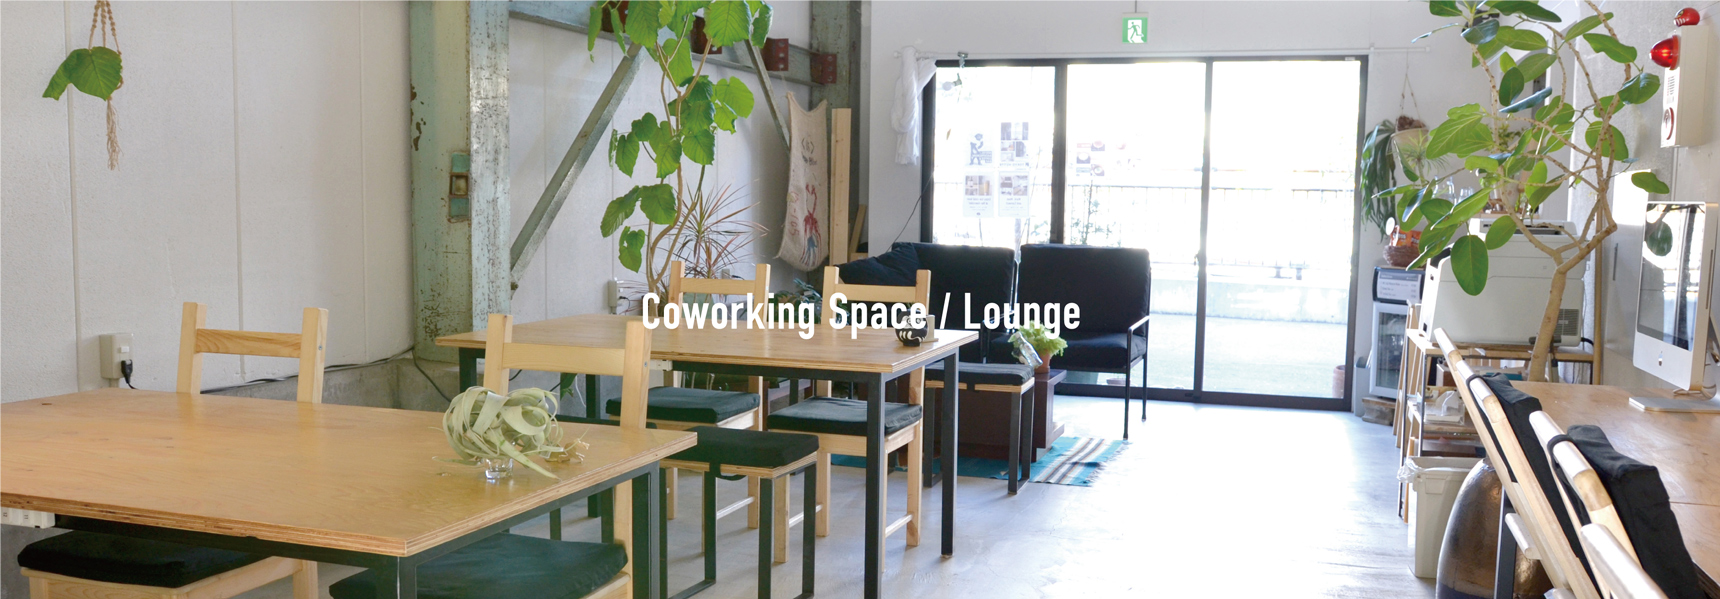 Coworking Space  コワーキングスペース